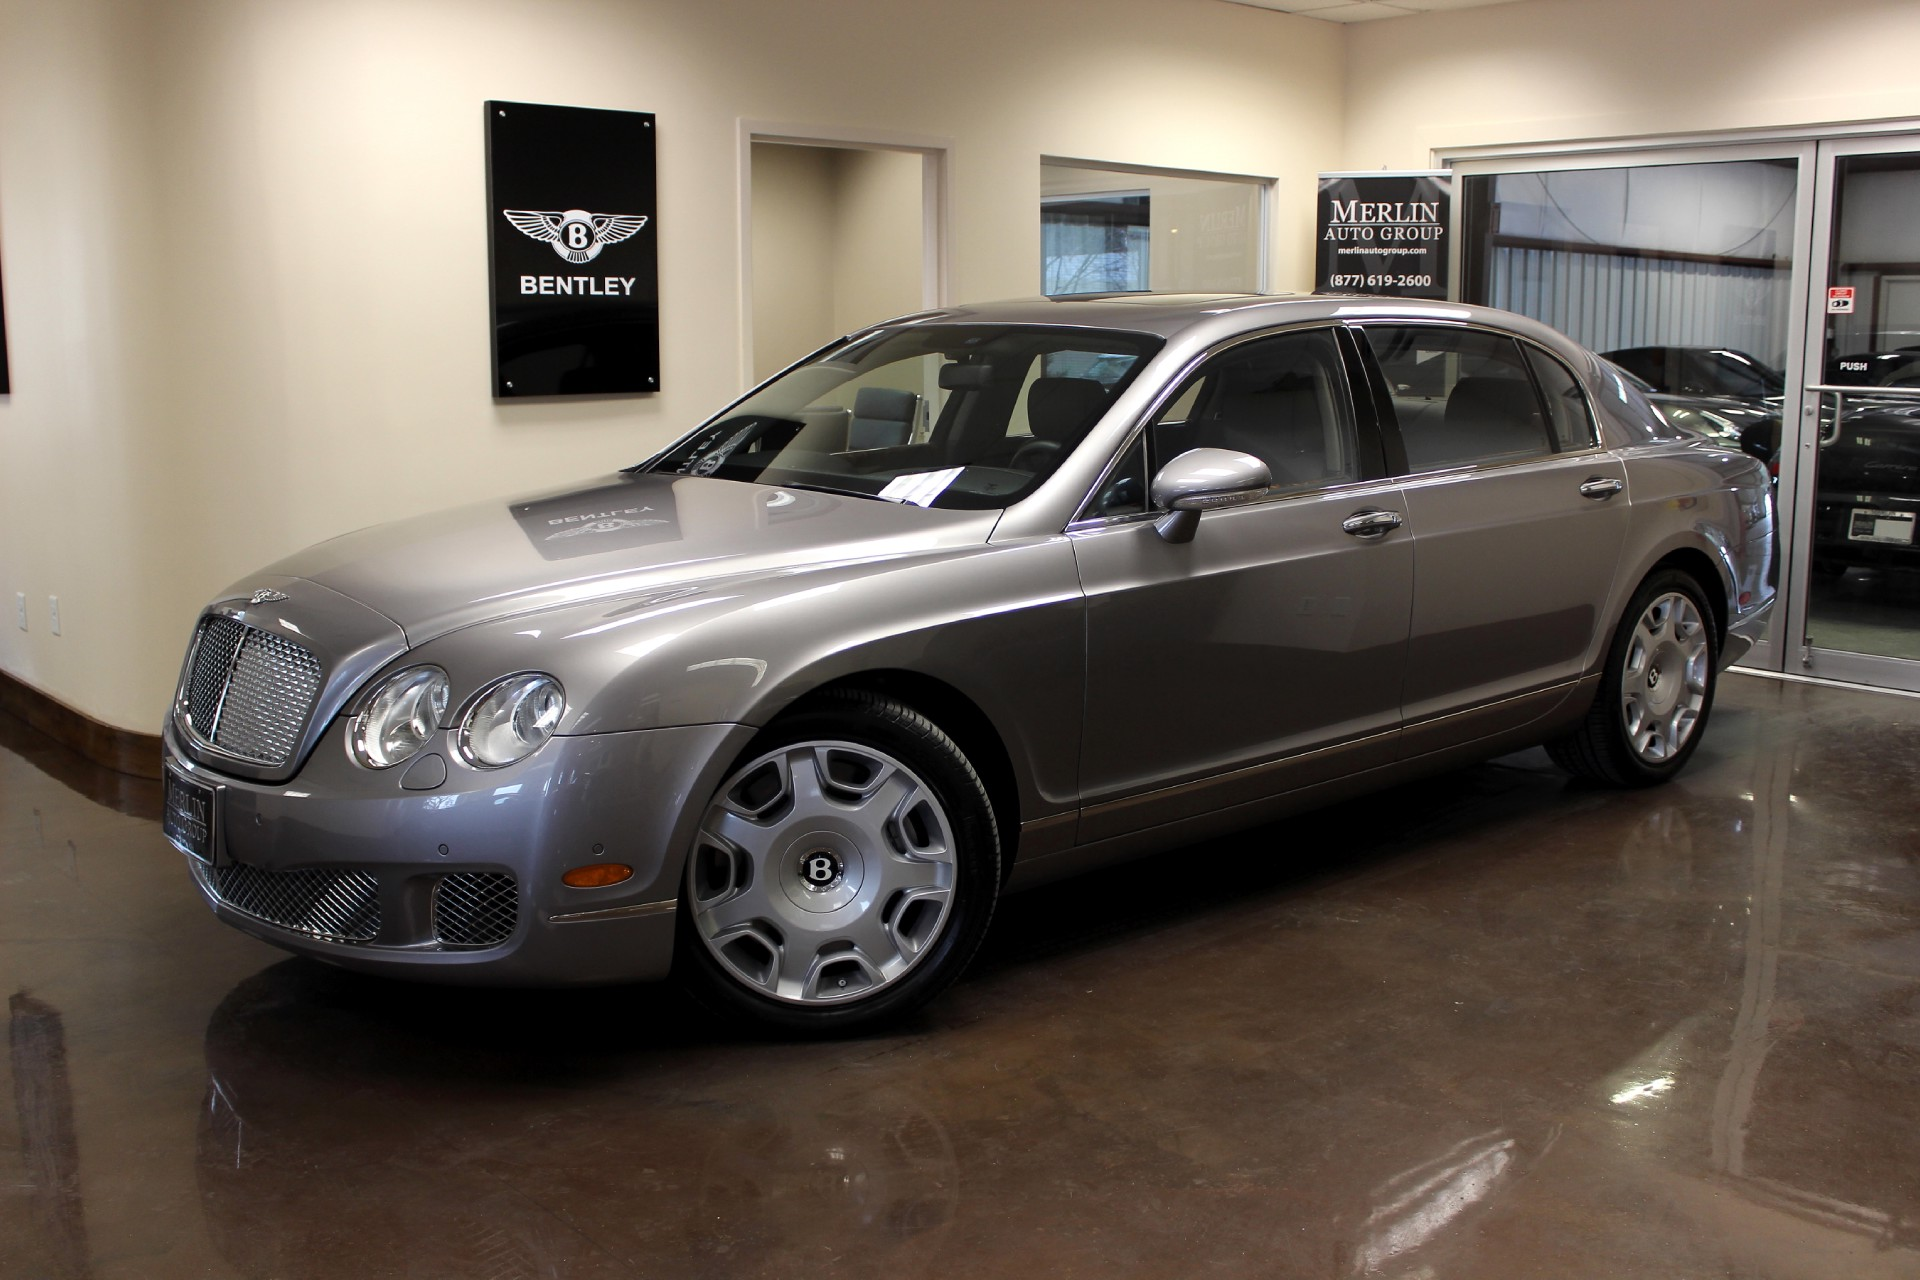 used 2009 bentley continental flying spur stock p2739 ultra luxury car from merlin auto group. Black Bedroom Furniture Sets. Home Design Ideas